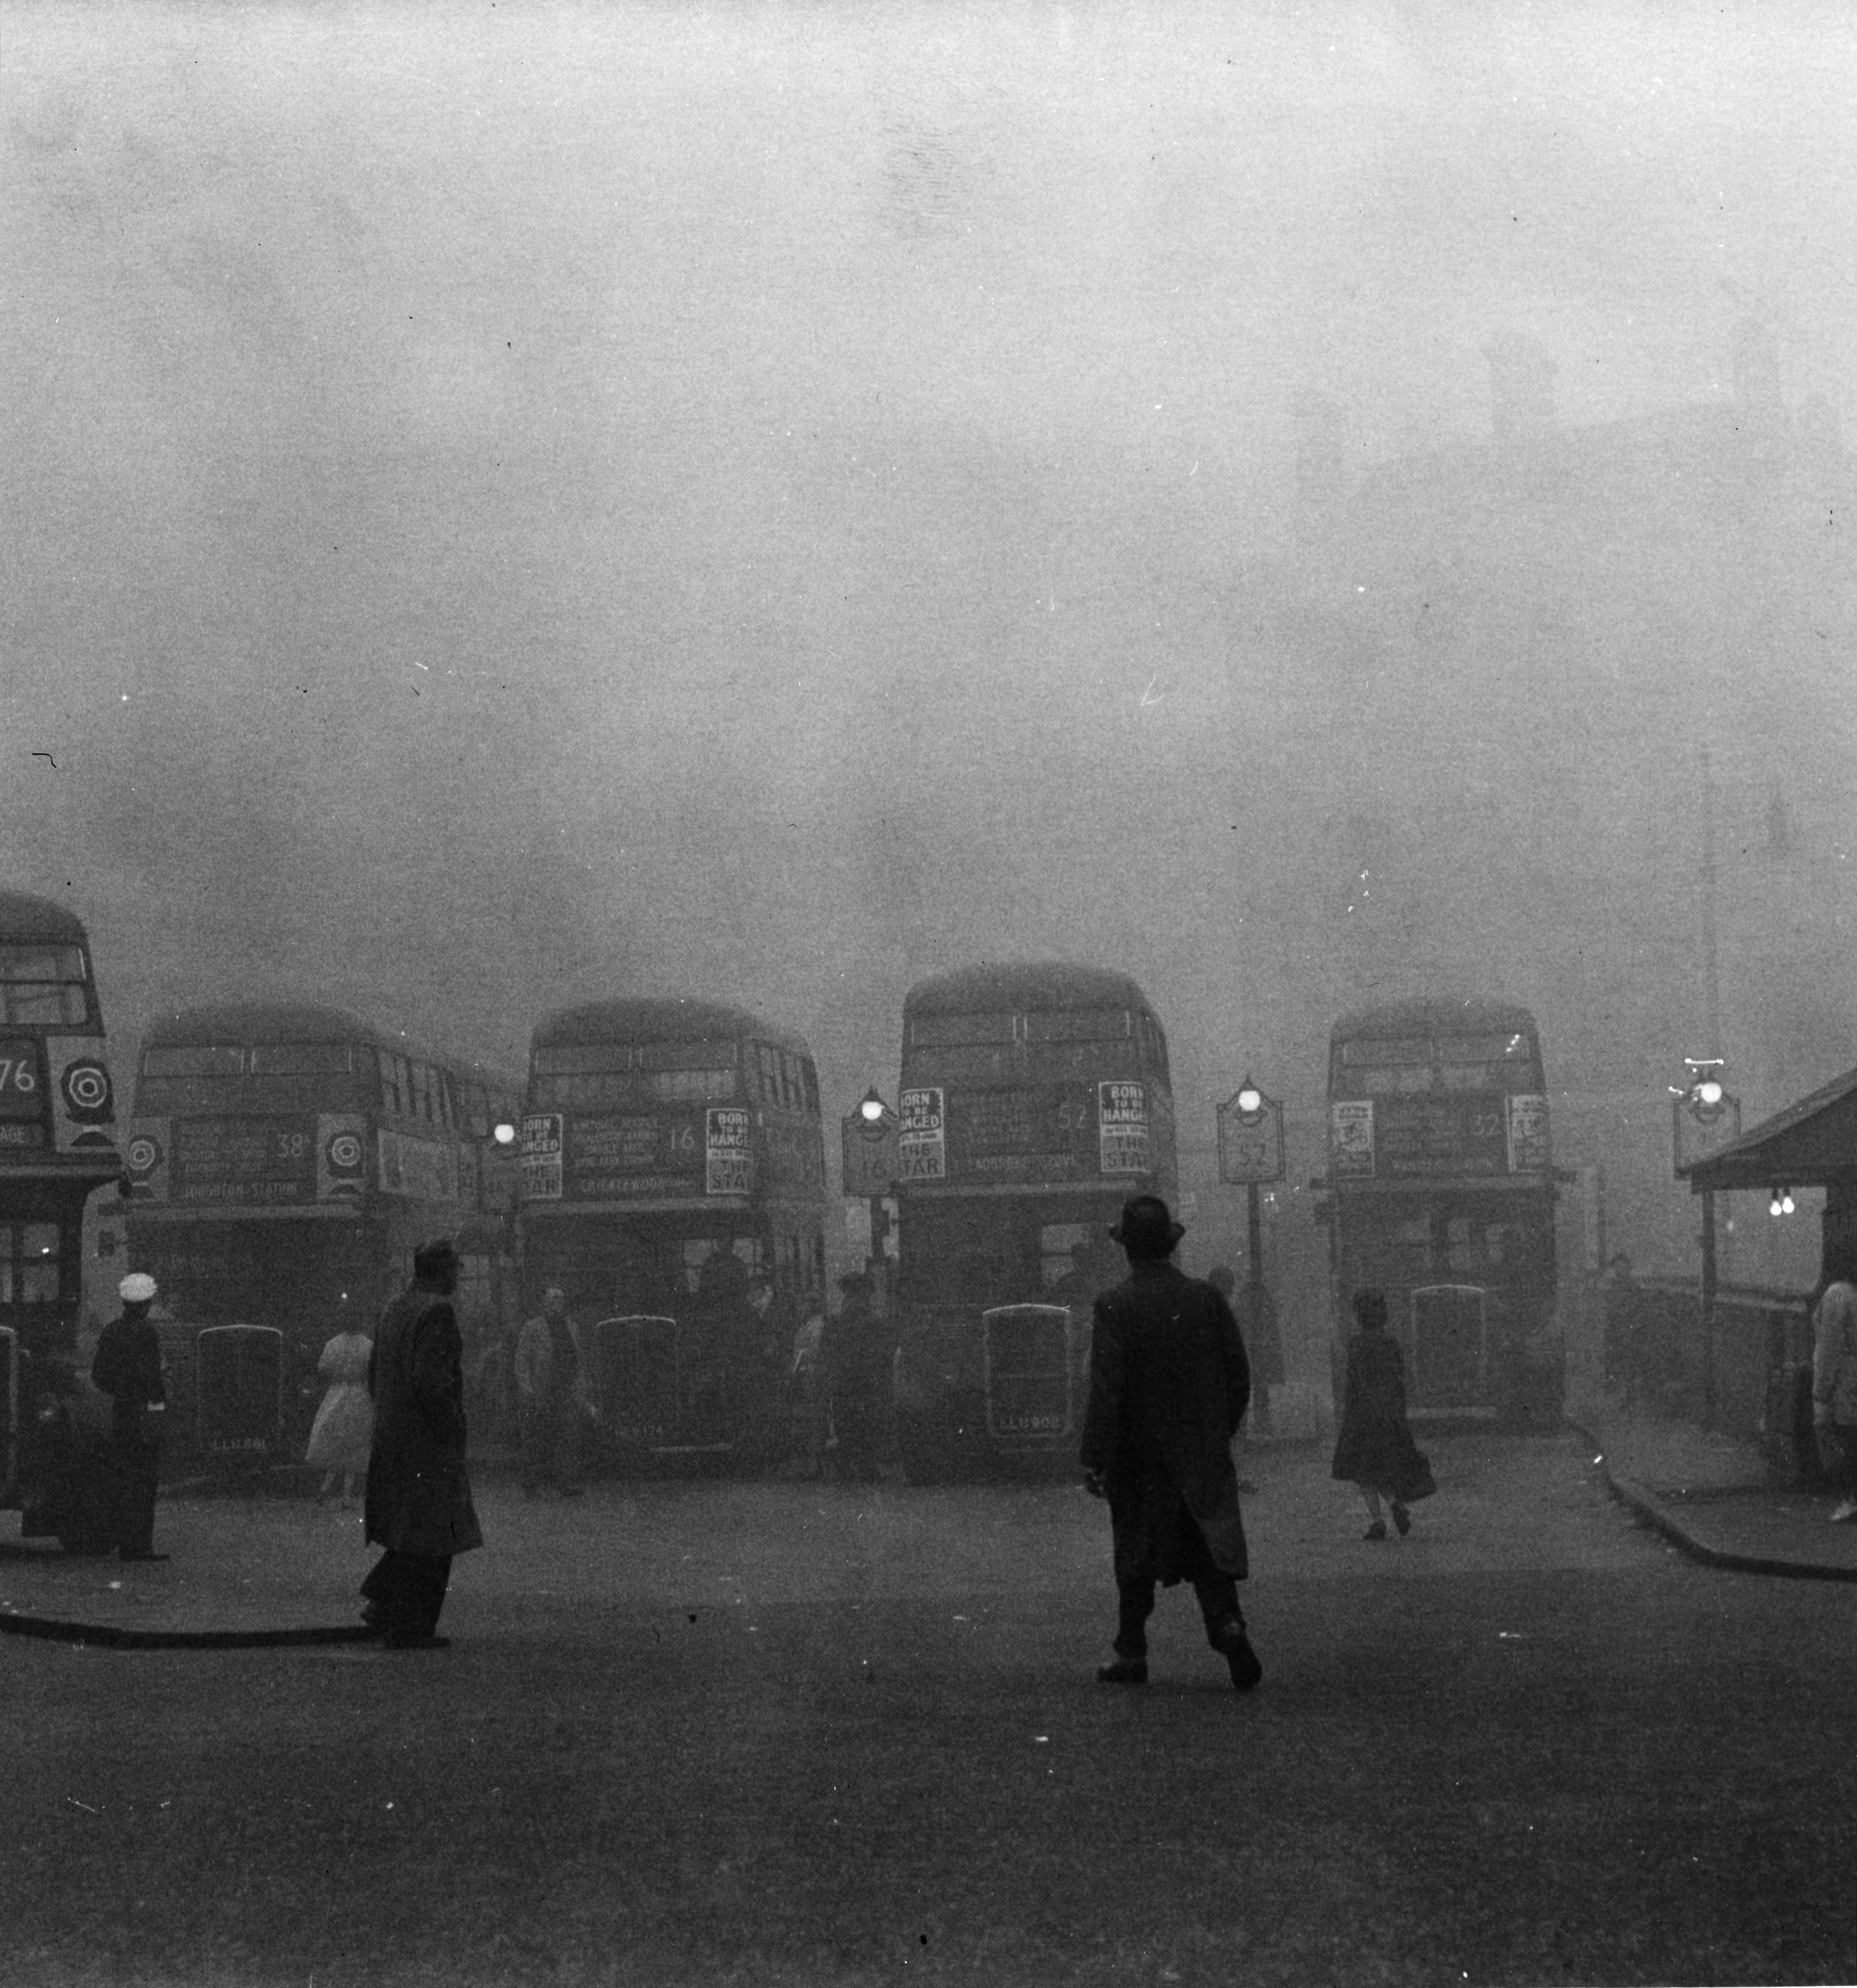 2nd October 1960: An autumn mist falls on Victoria Bus Station in London. (Photo by Fox Photos/Getty Images)